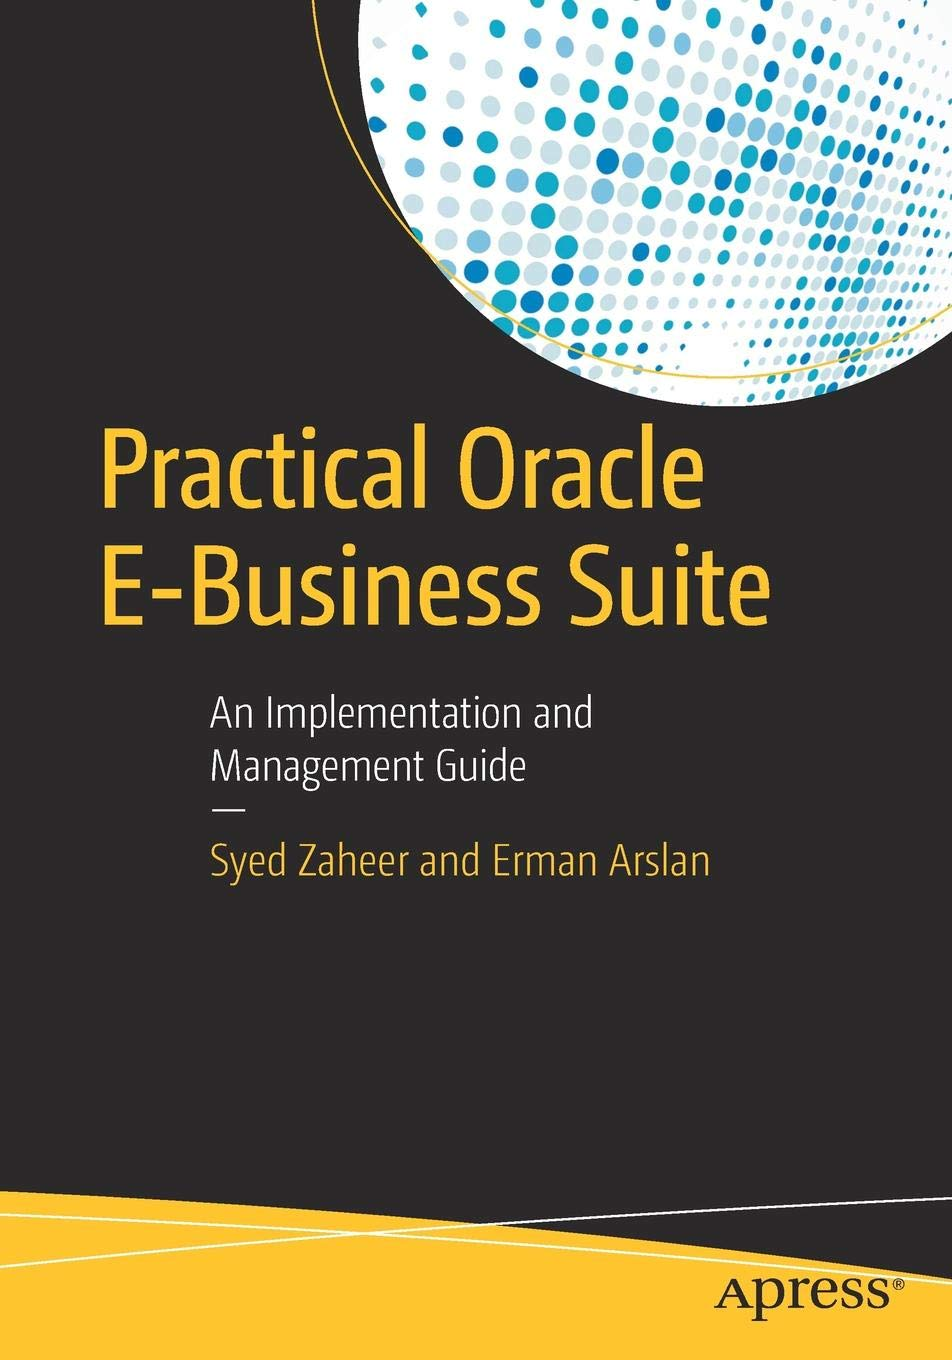 Practical Oracle E-Business Suite: An Implementation and Management Guide -  Livros na Amazon Brasil- 9781484214237